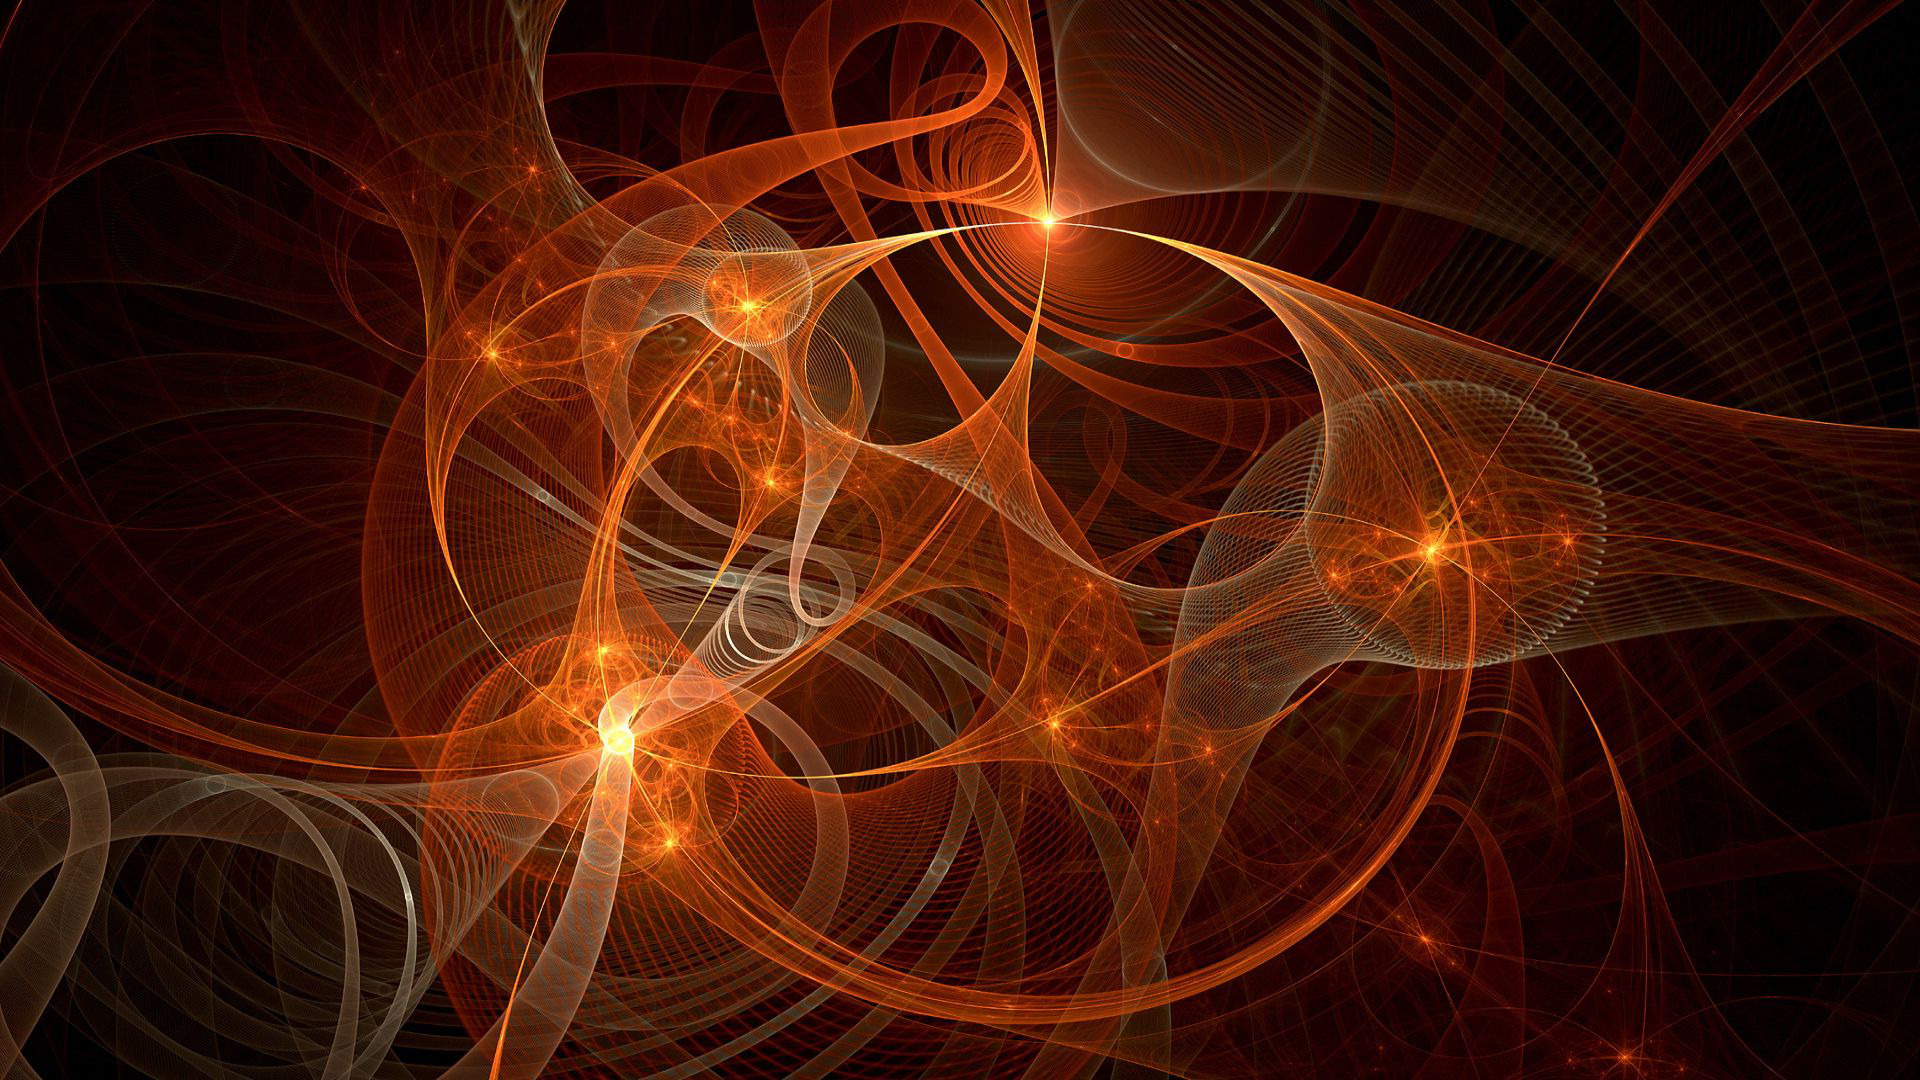 Fractal curves wallpaper